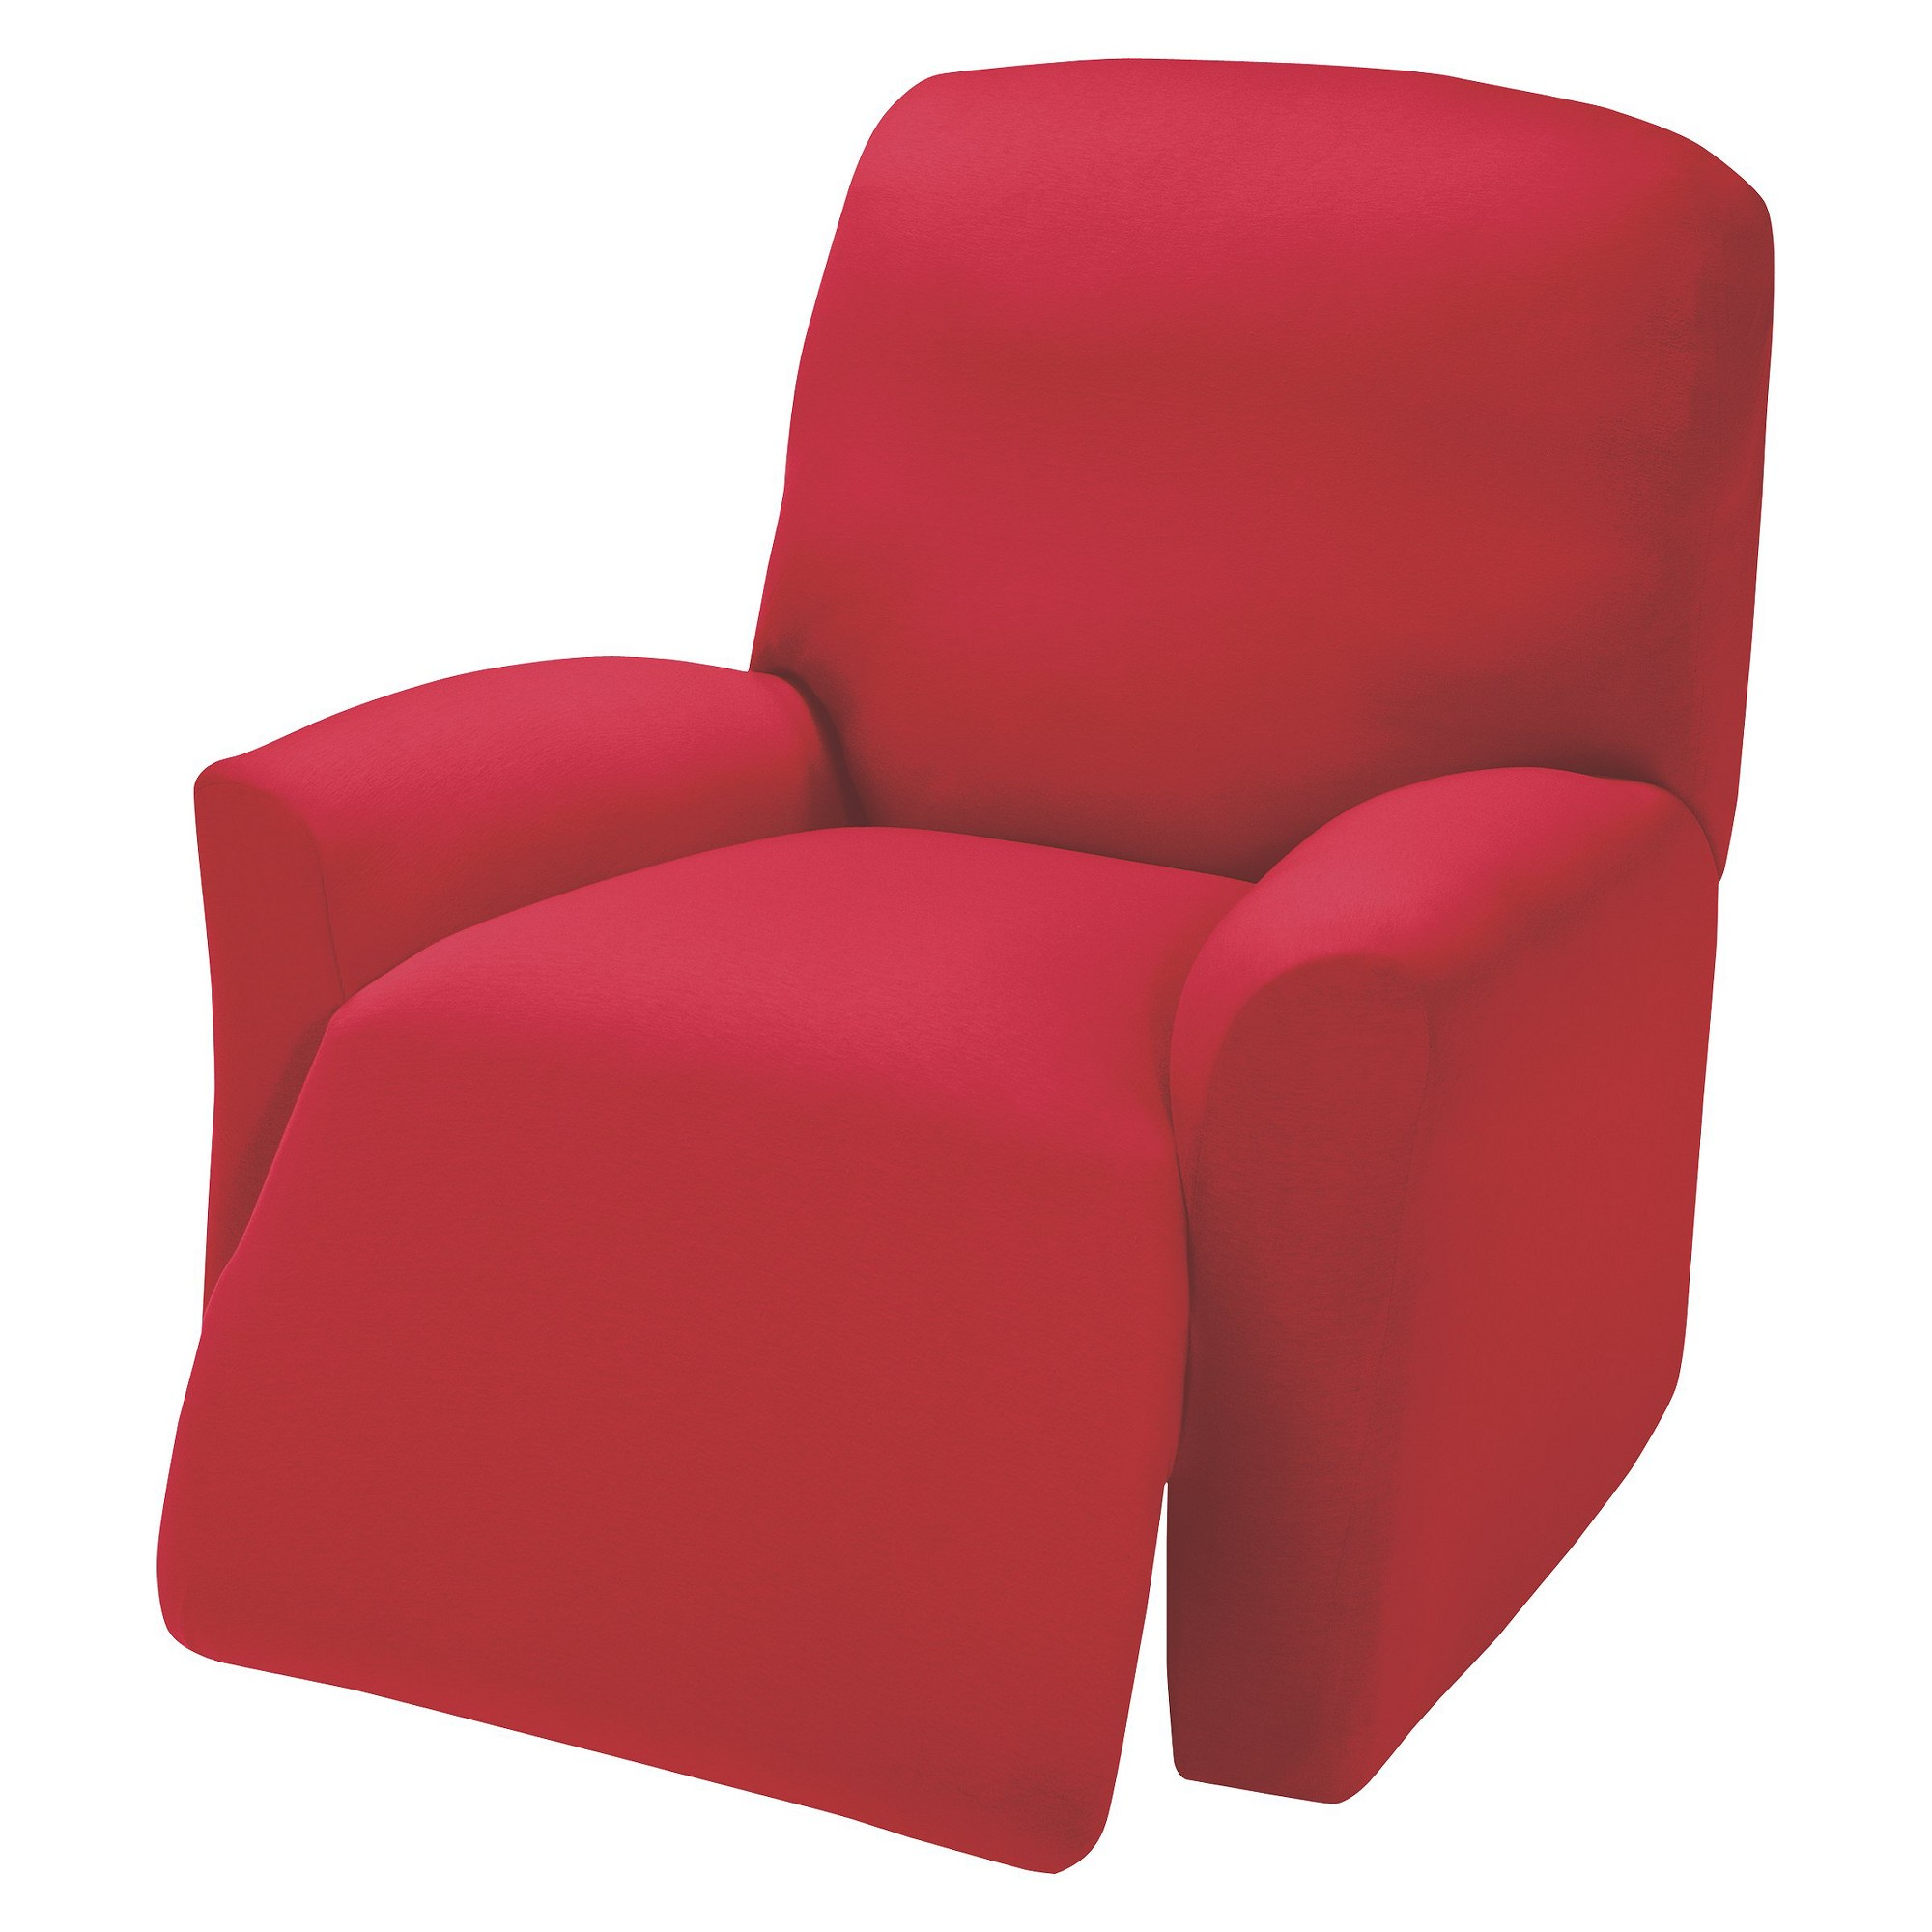 Red Jersey Large Recliner Slipcover - Madison Industries